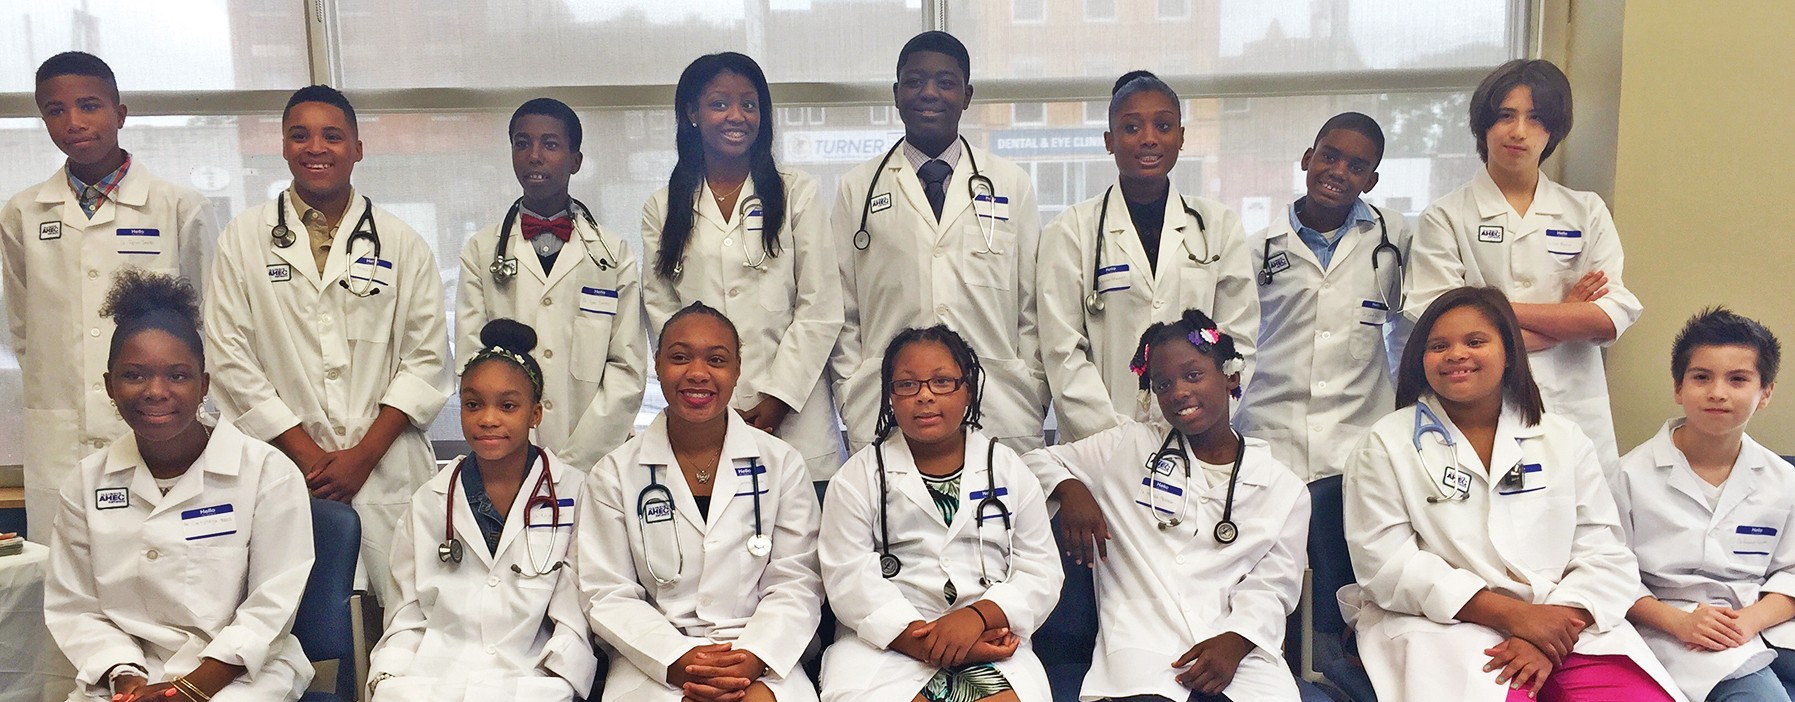 Medical students bring healthy learning to North Lawndale